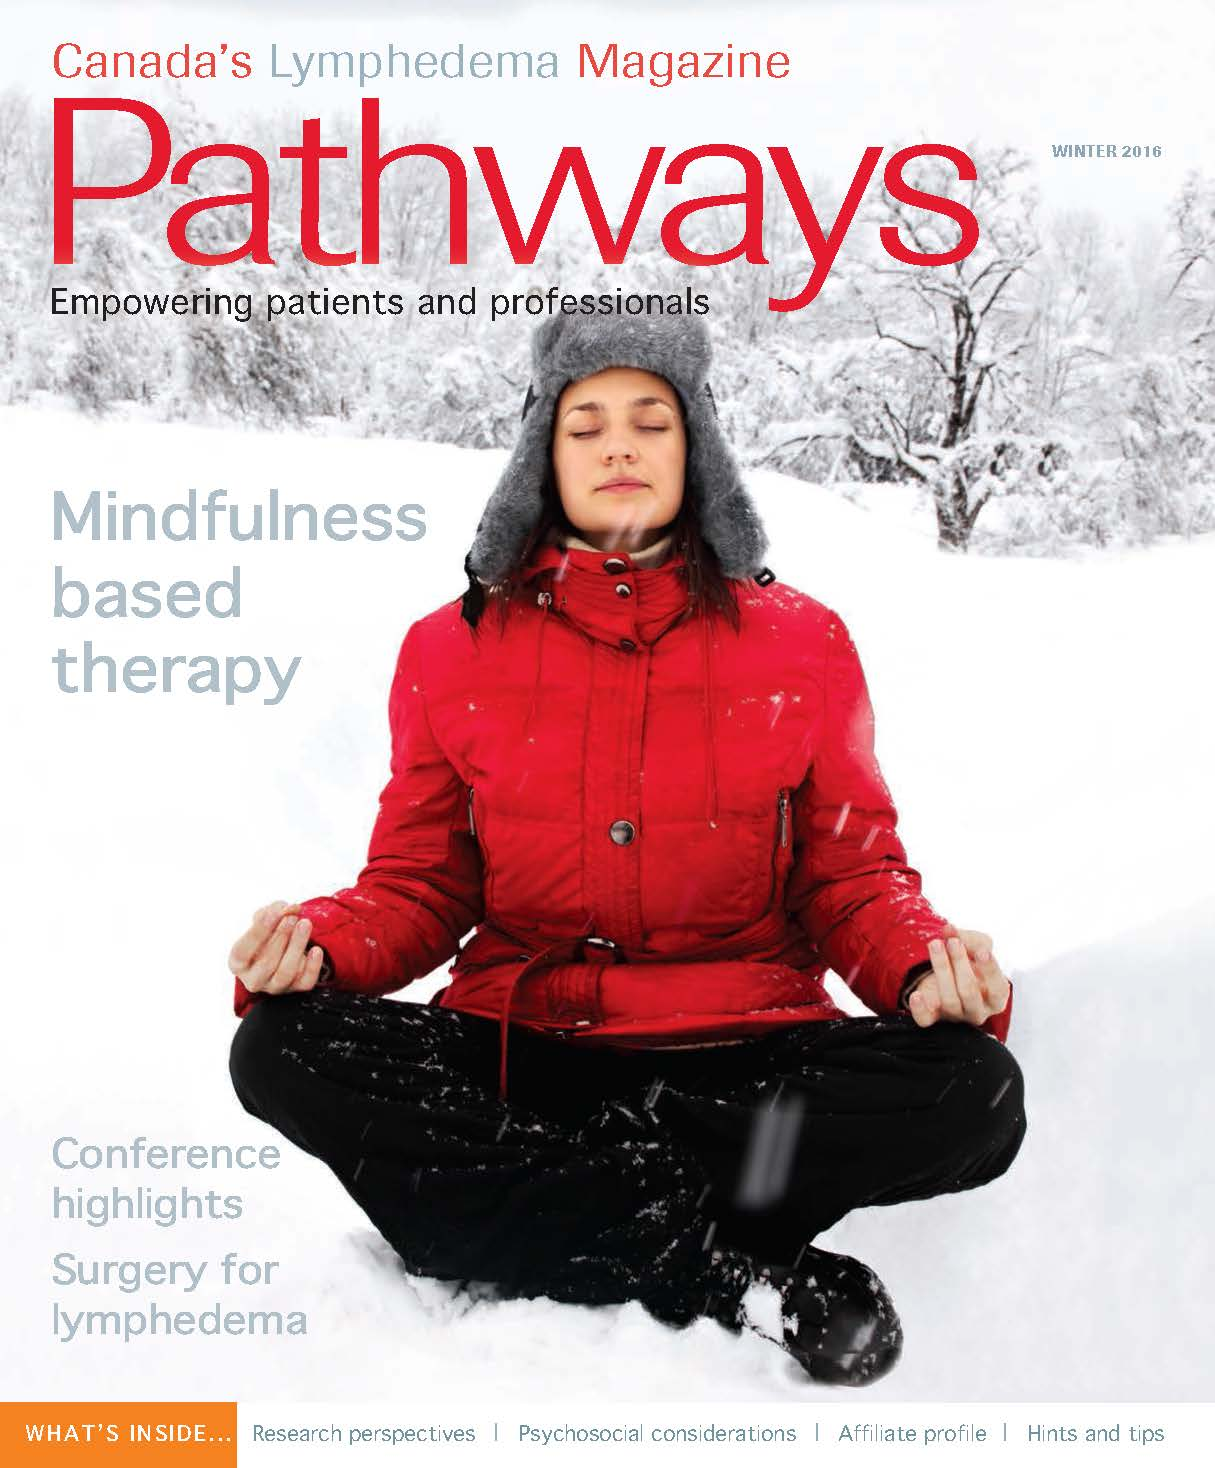 Winter 2016 cover